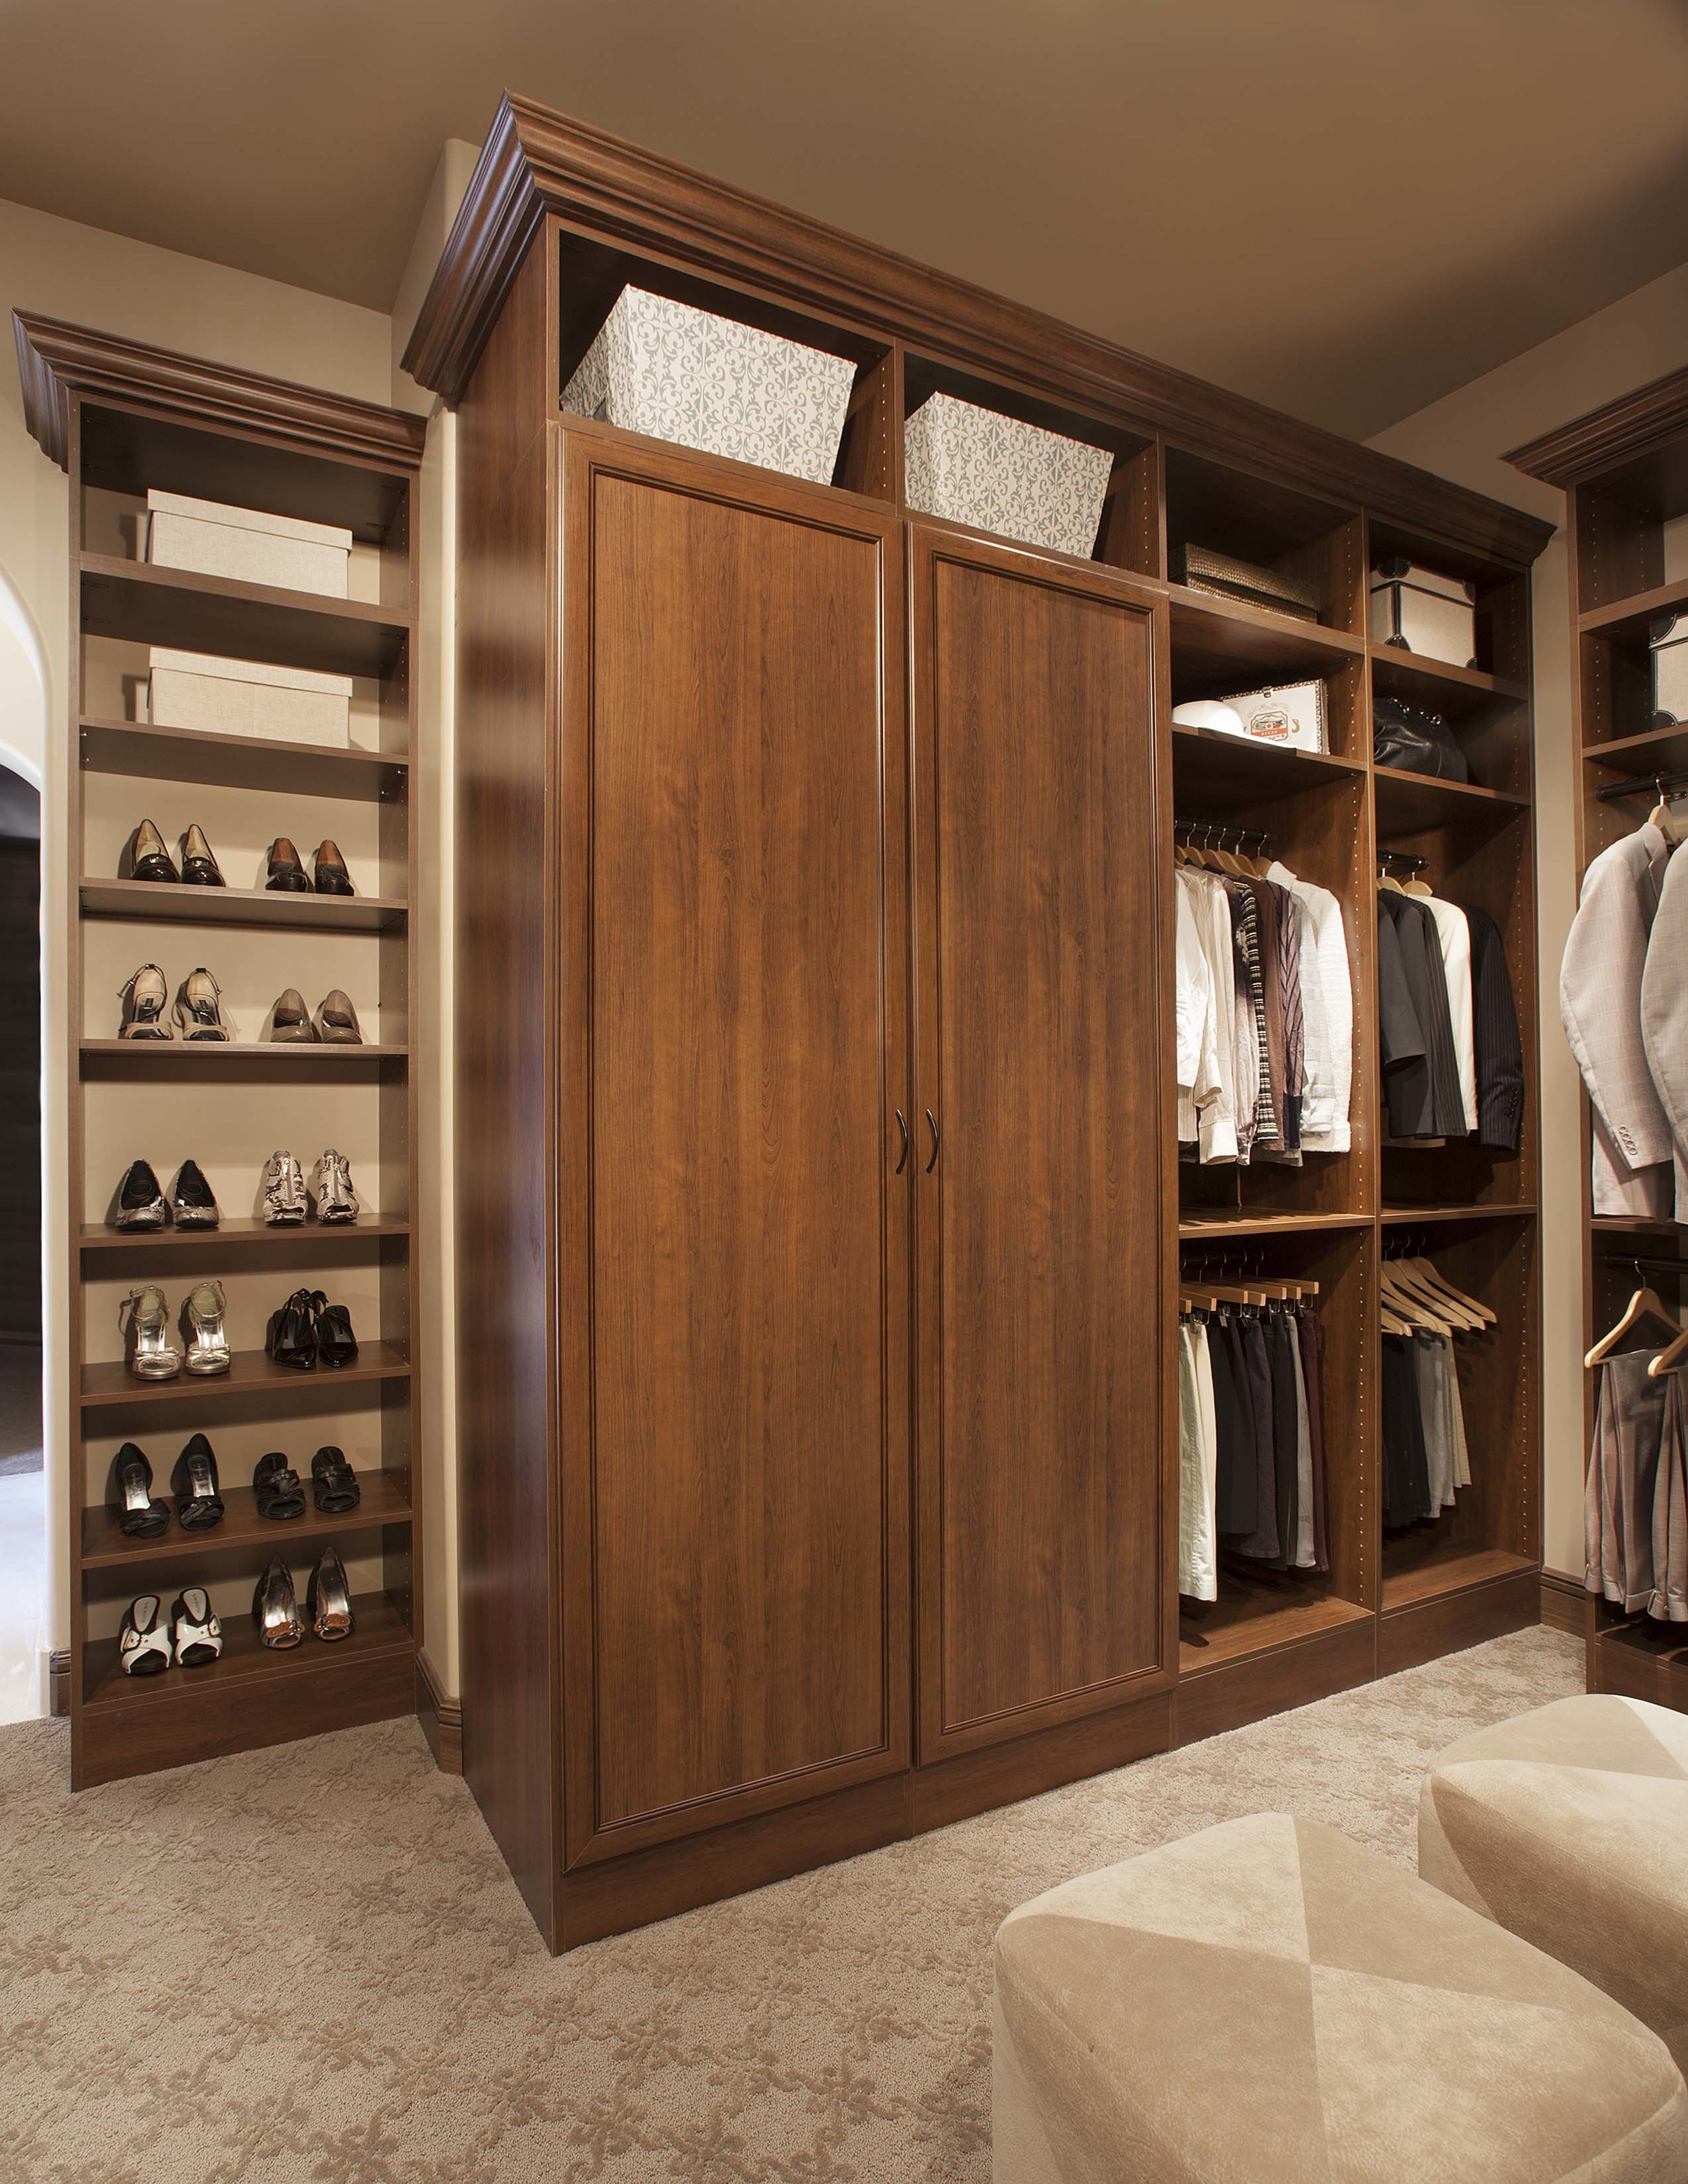 Crown molding transforms the look of this custom closet.  Call Closets of Tulsa  for a FREE consultation and 3-D closet design:  918.609.0214